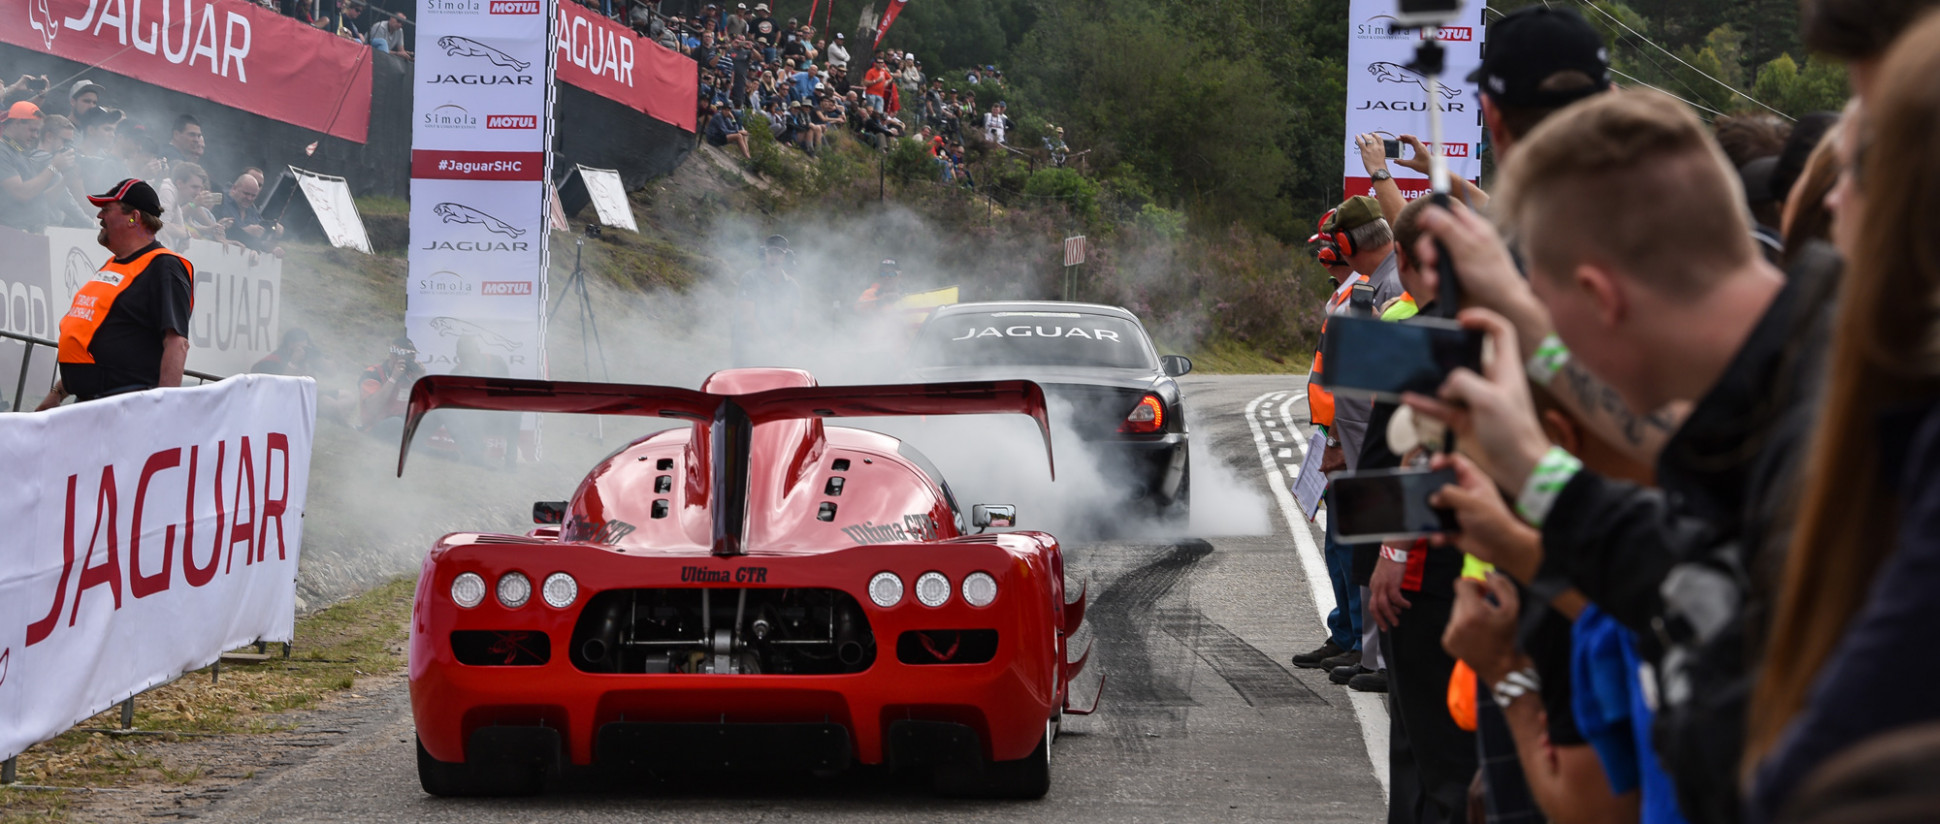 A thrilling festival of speed at 11 Jaguar Simola Hillclimb ..